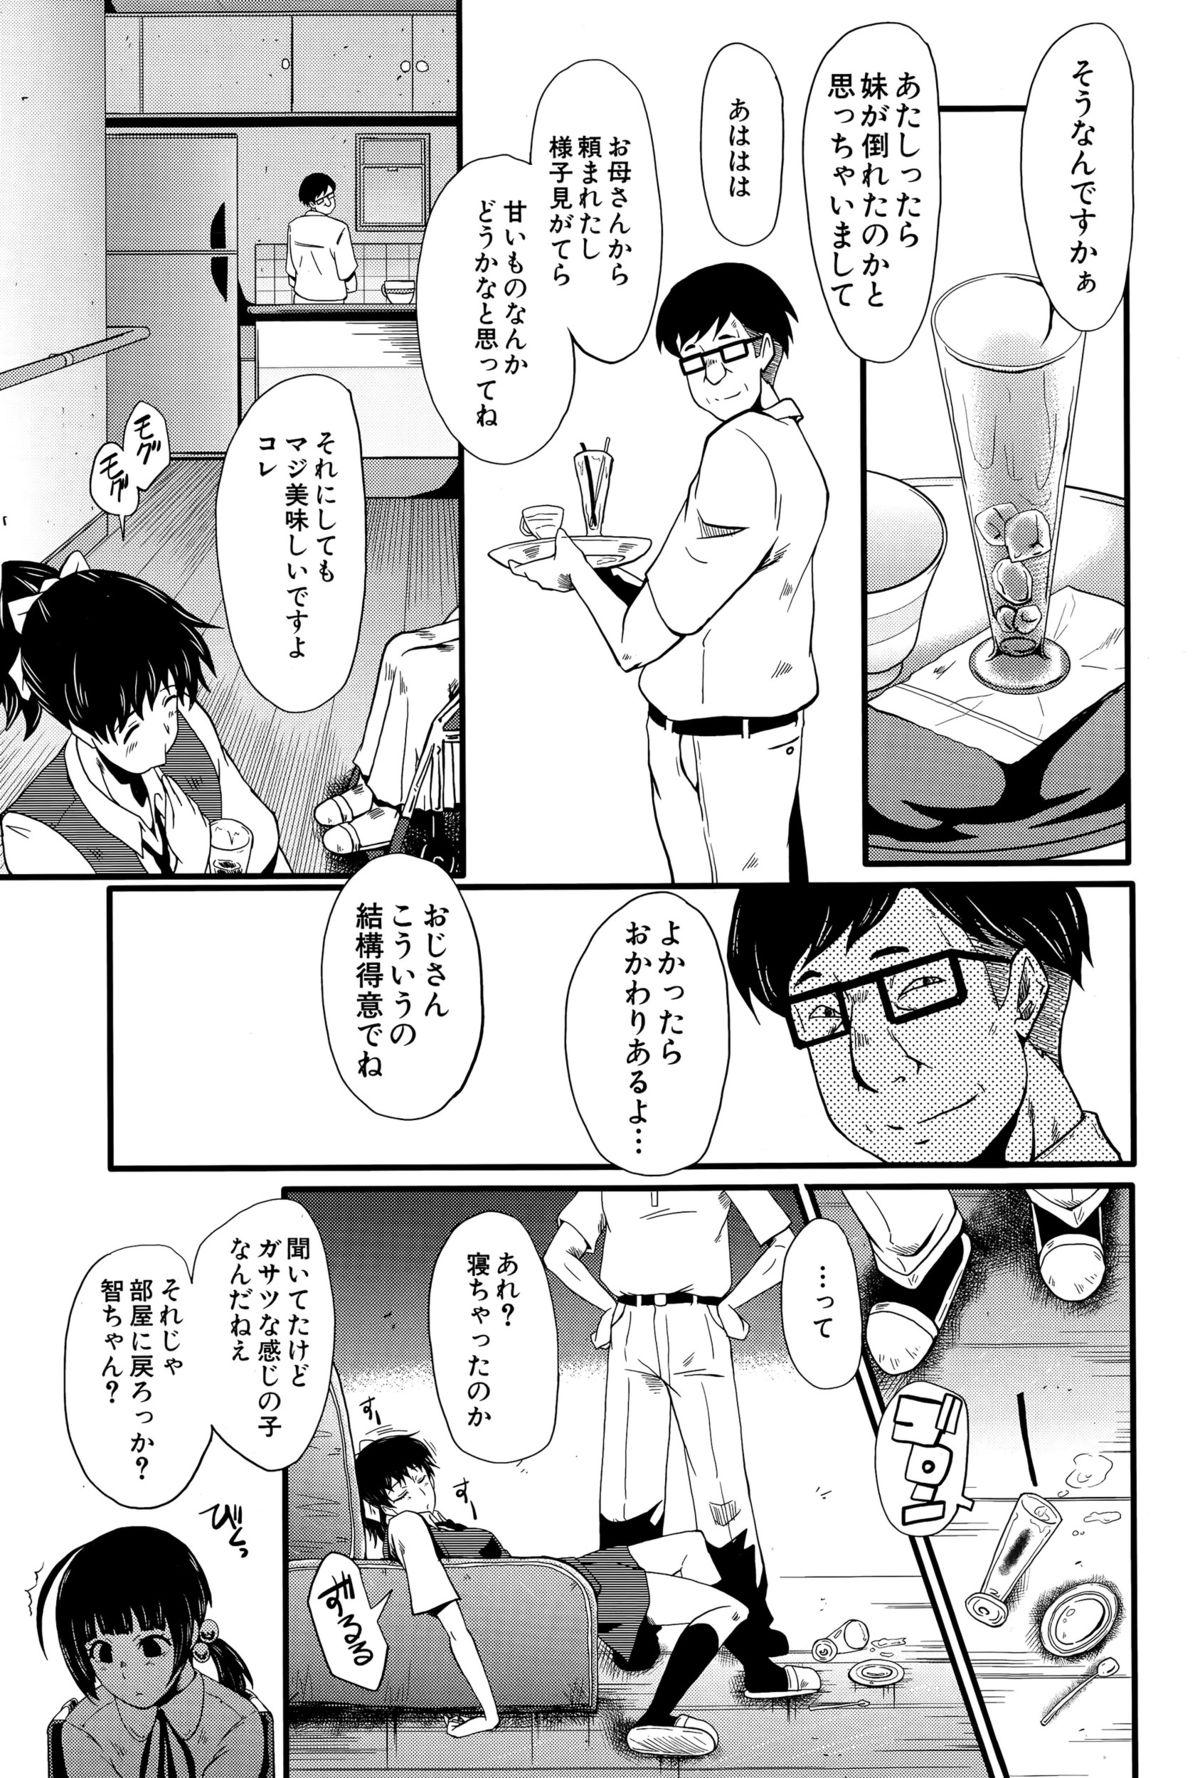 BUSTER COMIC 2015-07 108